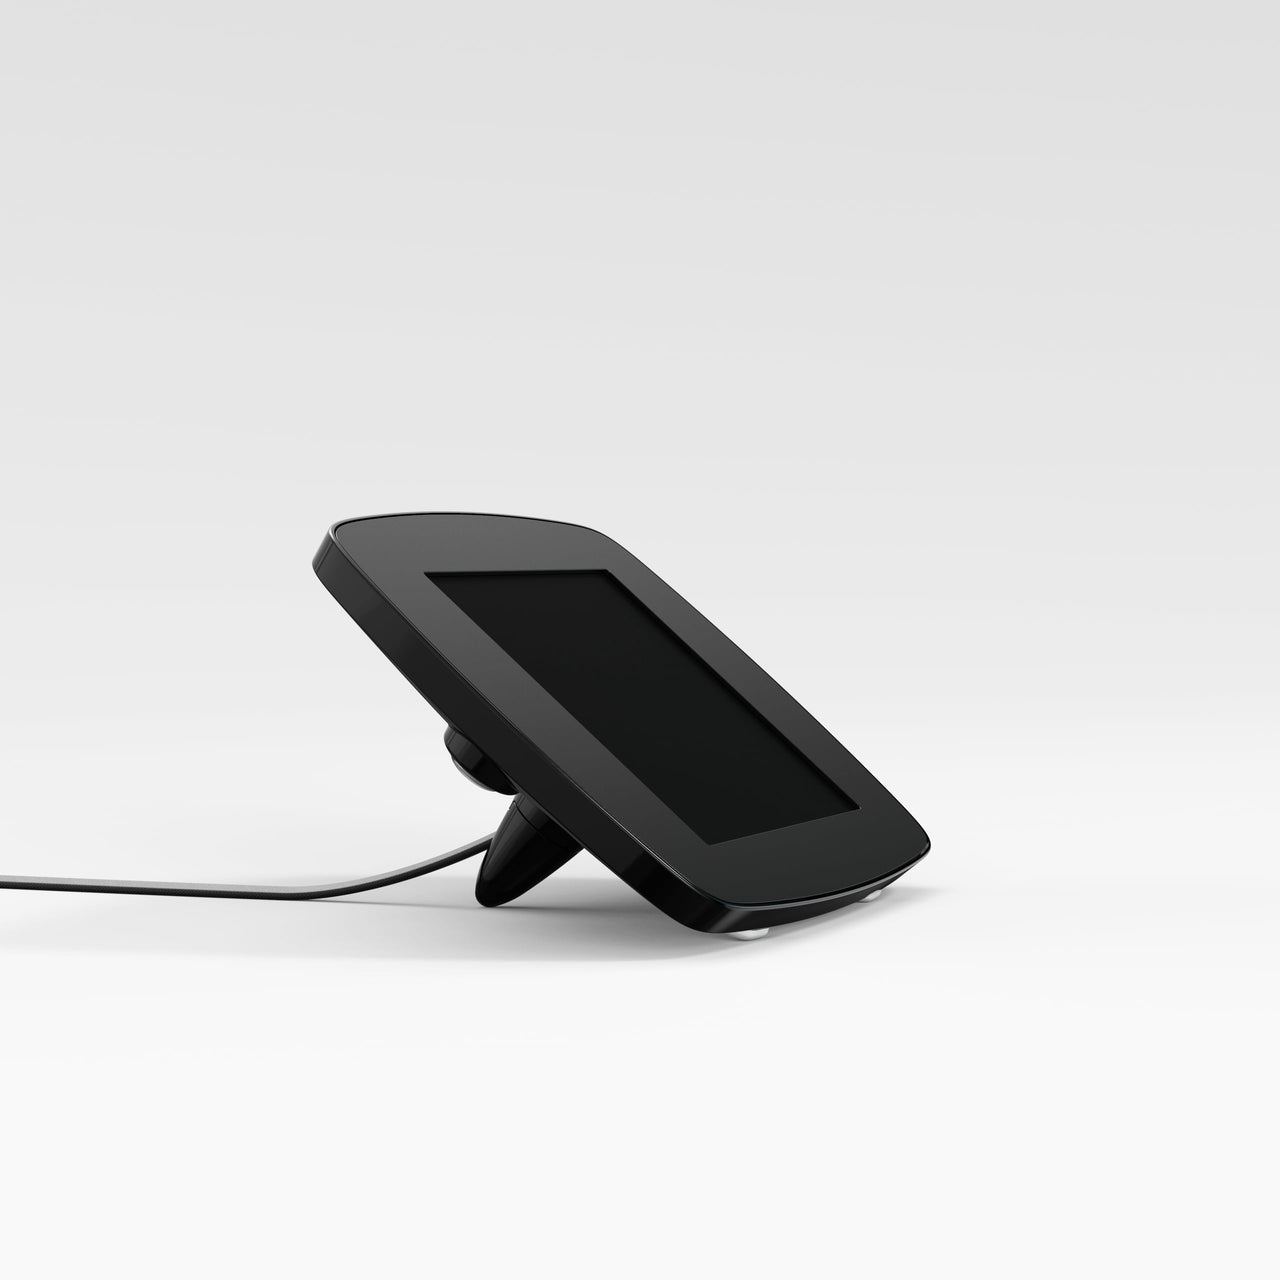 Bouncepad Lounge - A tethered tablet and iPad enclosure in black.